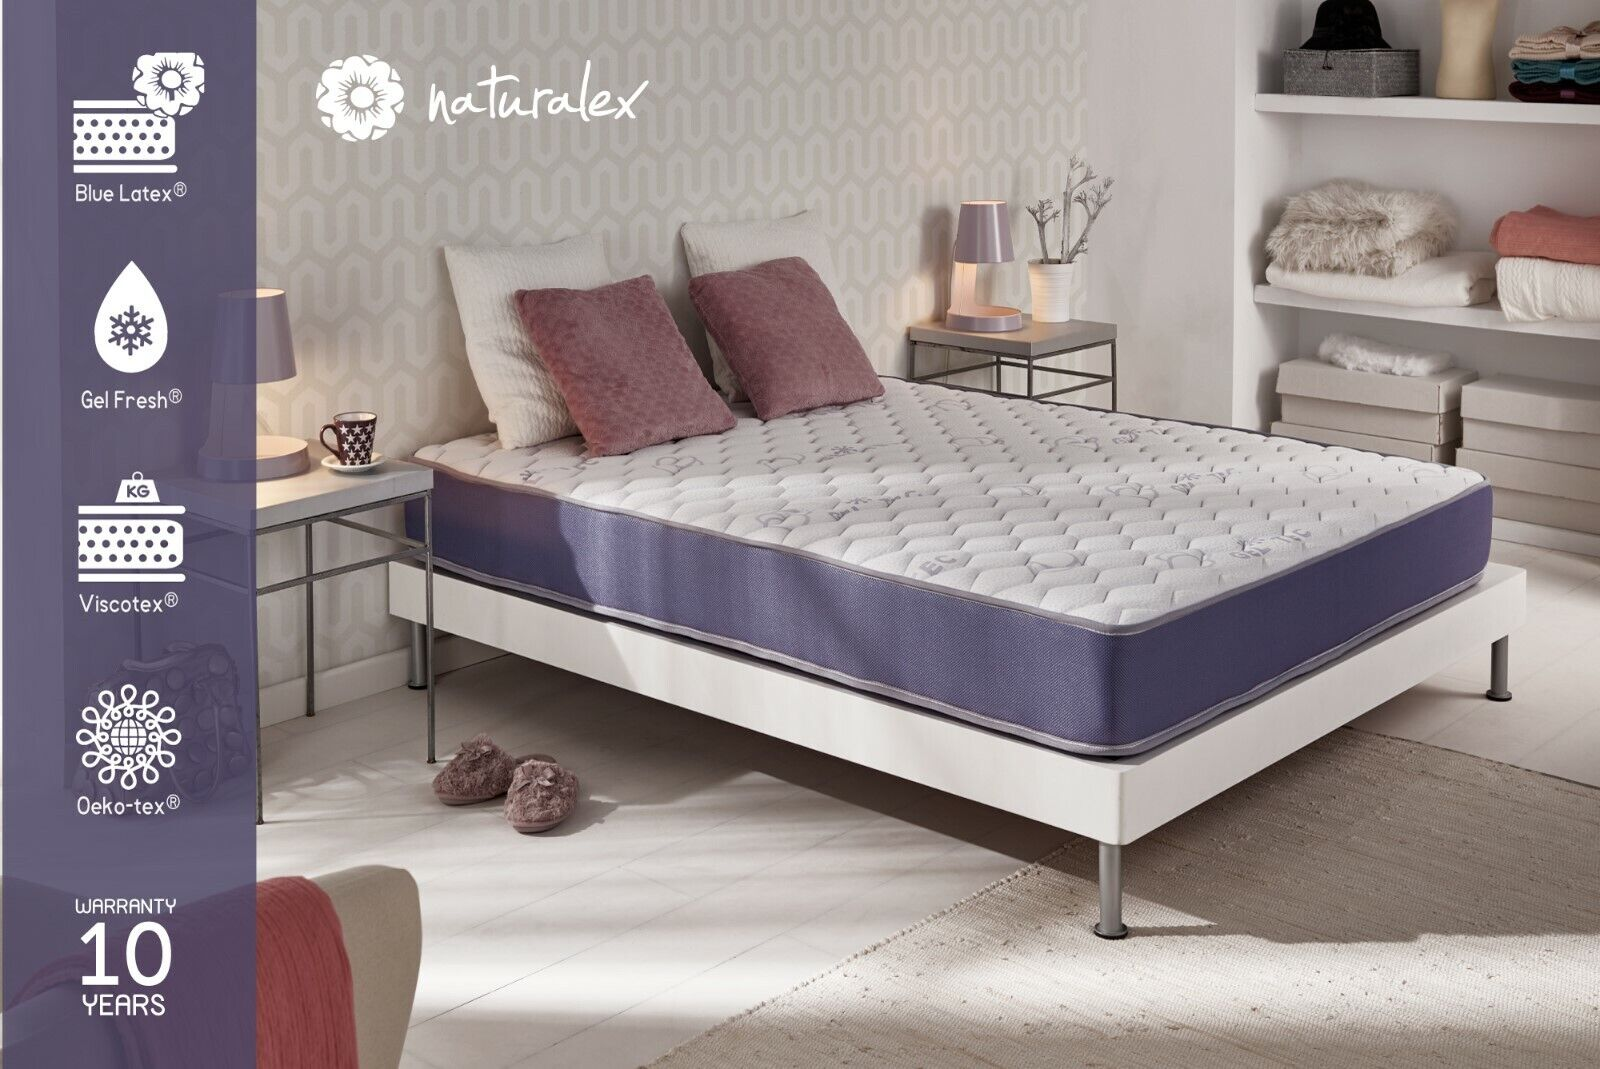 NATURALEX   Cool Blau Gel Memory Foam Mattress   Medium Firm Support   All Größes